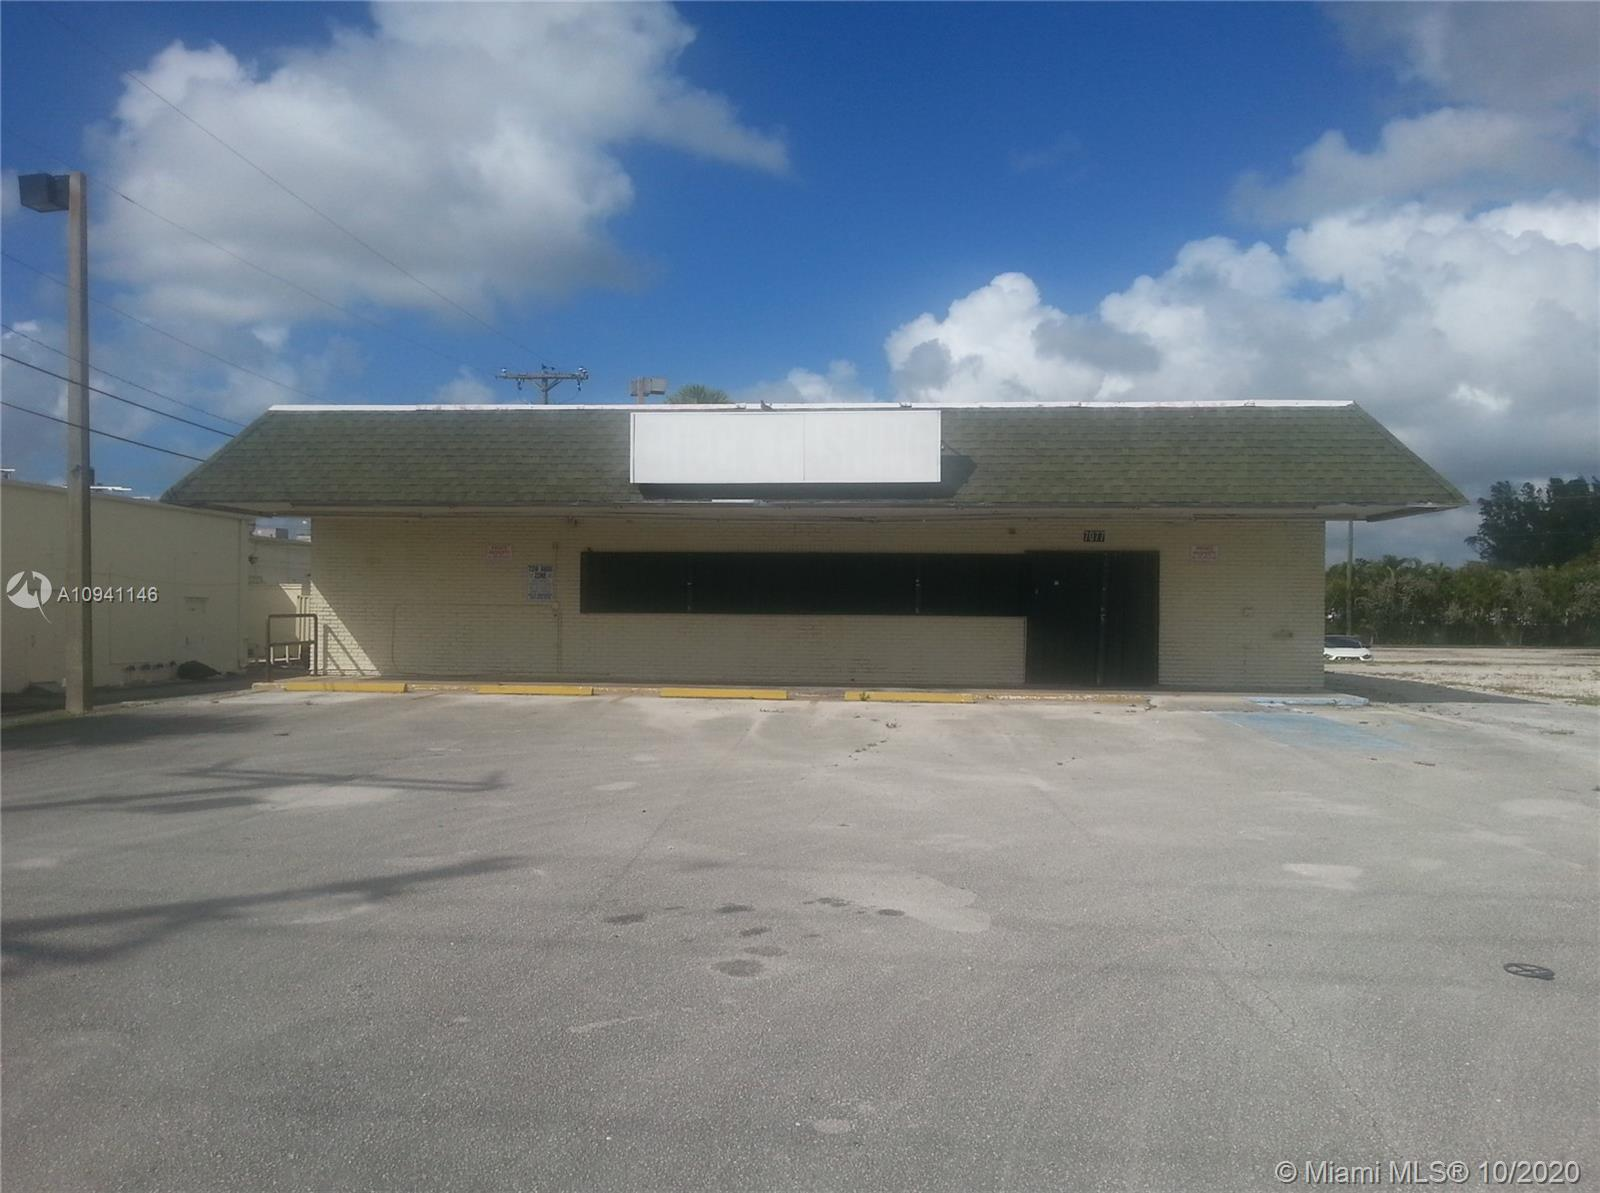 7049 Lake Worth Rd, Lake Worth, Florida 33467, ,Commercial Sale,For Sale,7049 Lake Worth Rd,A10941146